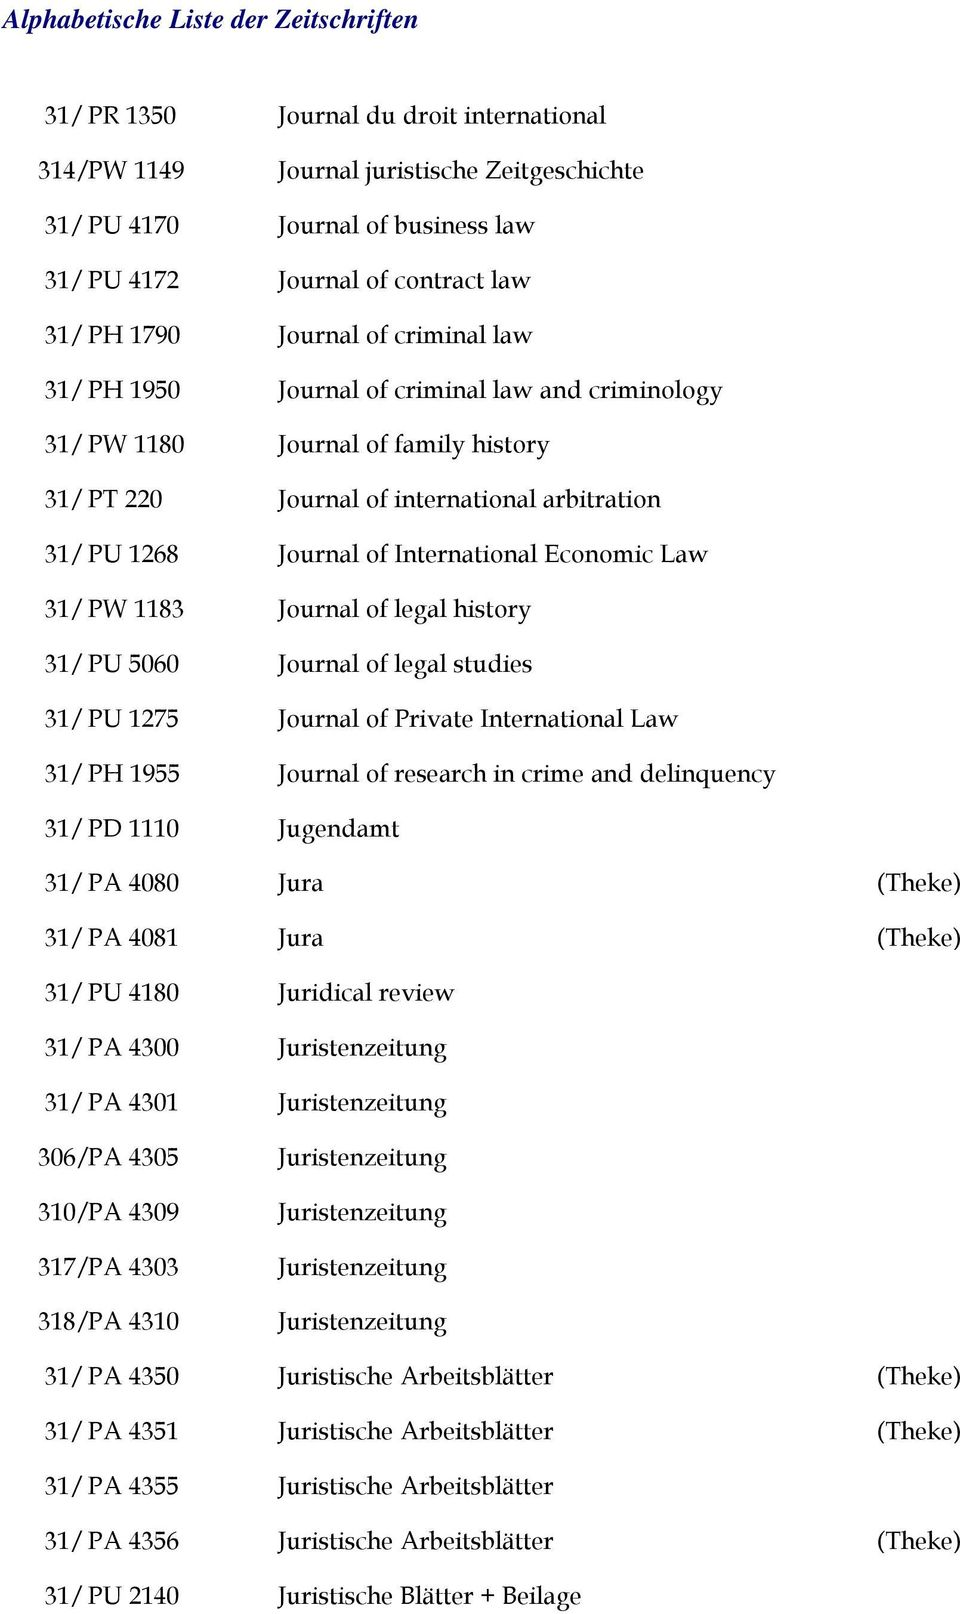 Journal of International Economic Law Journal of legal history Journal of legal studies Journal of Private International Law Journal of research in crime and delinquency Jugendamt 31/PA 4080 Jura